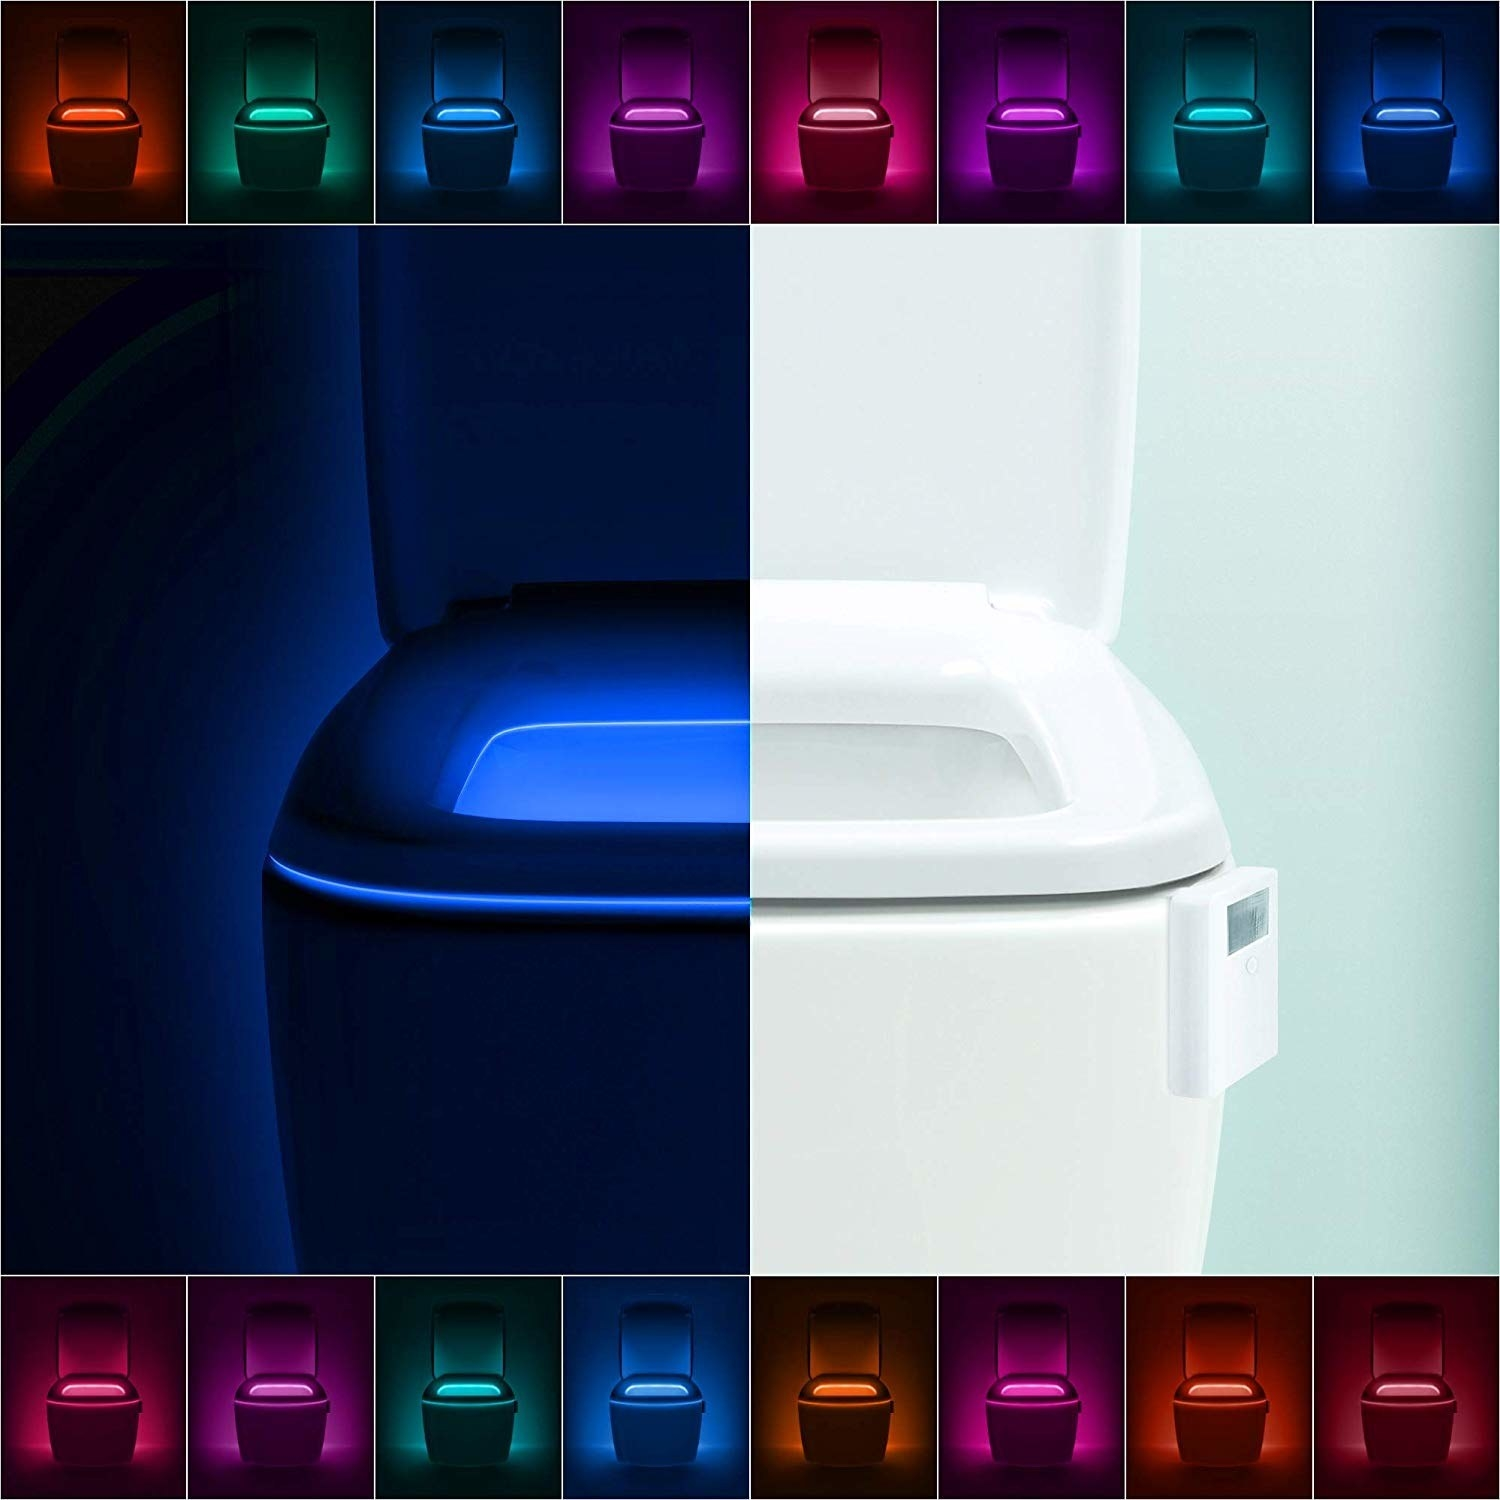 A collage of a toilet glowing all the different colors